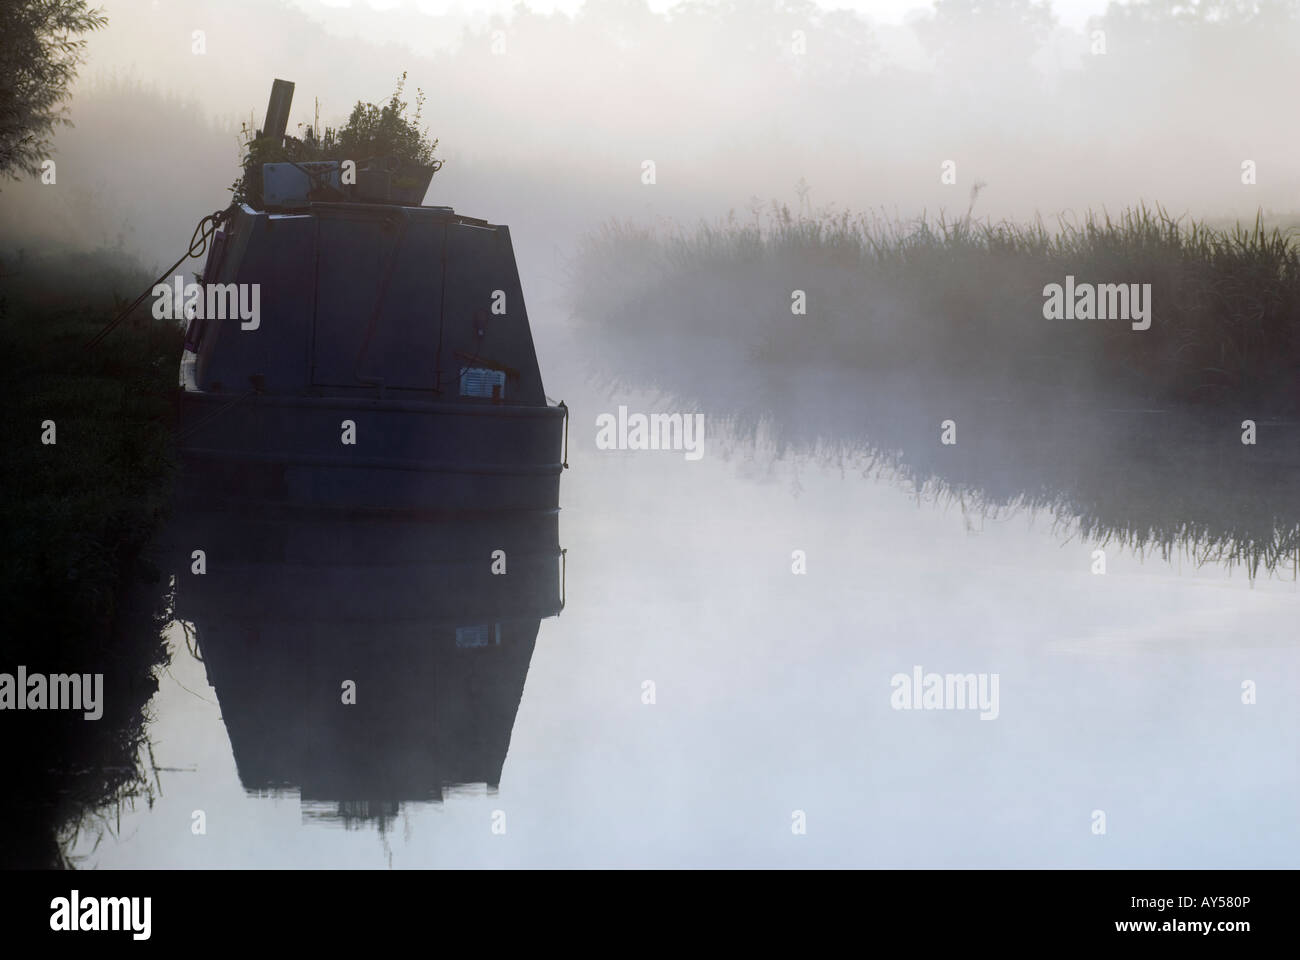 Doug Blane Moored narrowboat on a mysty noring on the Oxford Canal - Stock Image